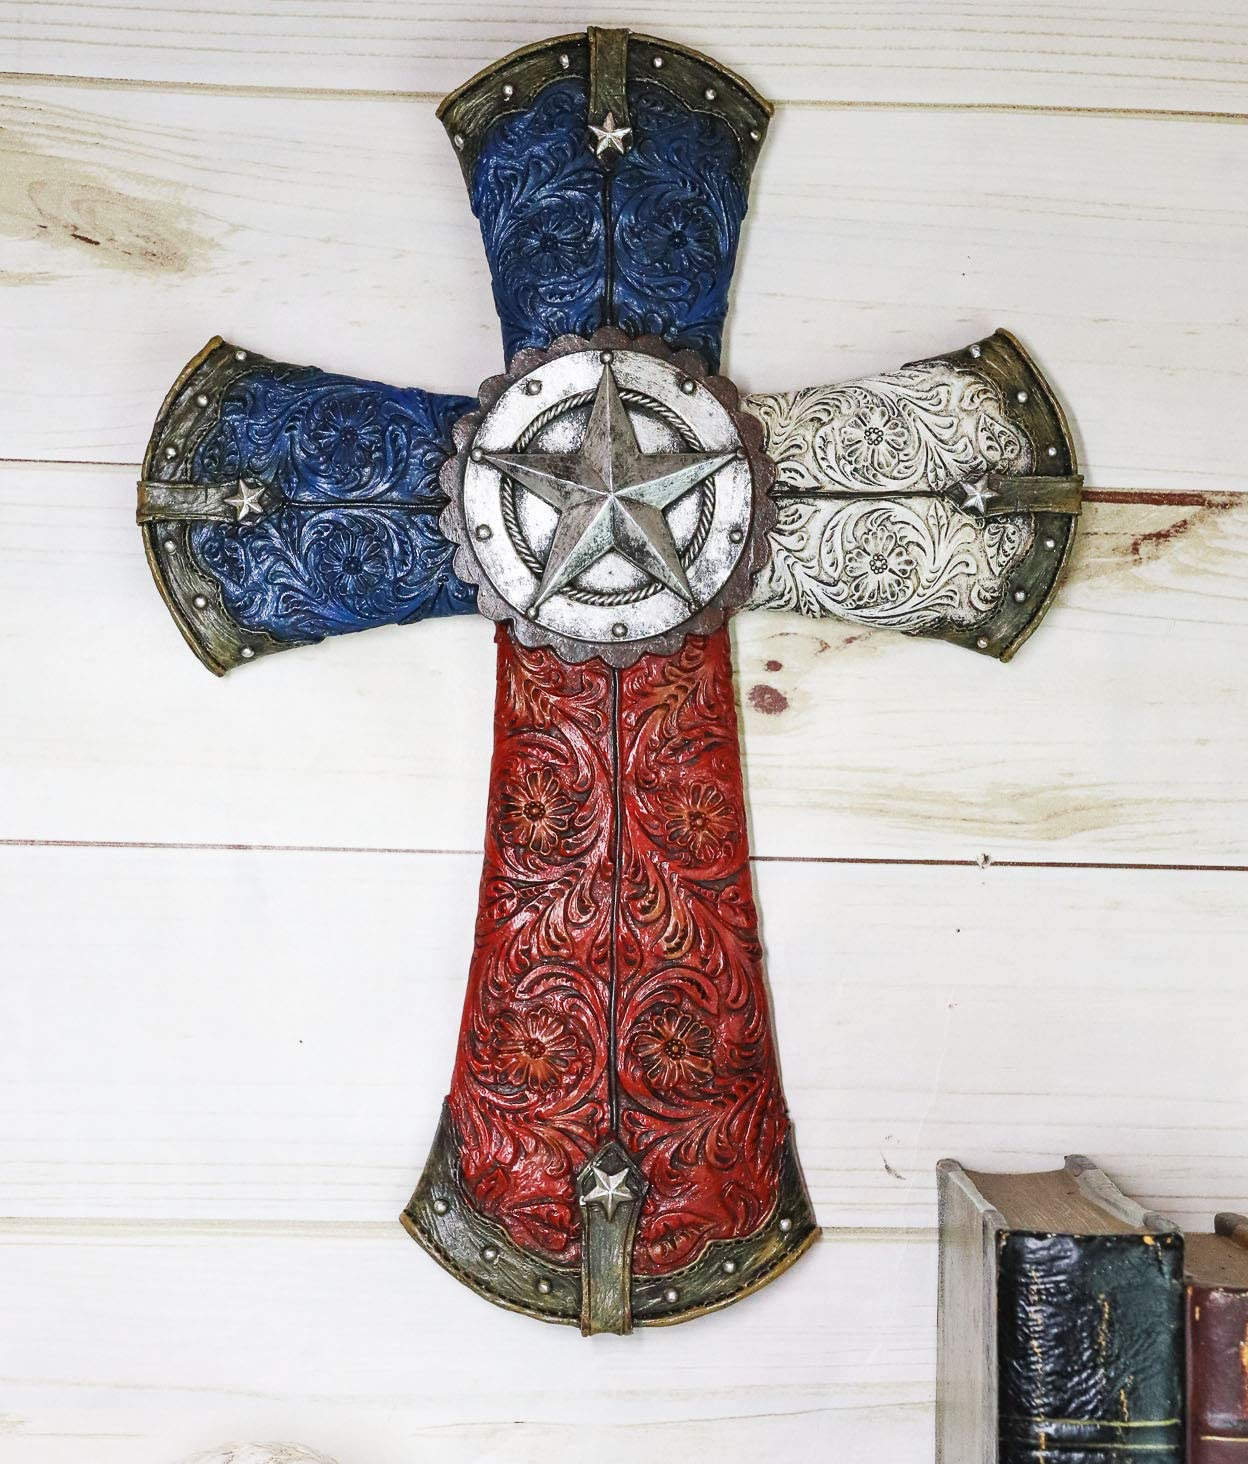 Ebros Rustic Western Lone Star With Tooled Floral Lace Patterns And Texas State Flag Colors Wall Cross Decor Plaque 13.5